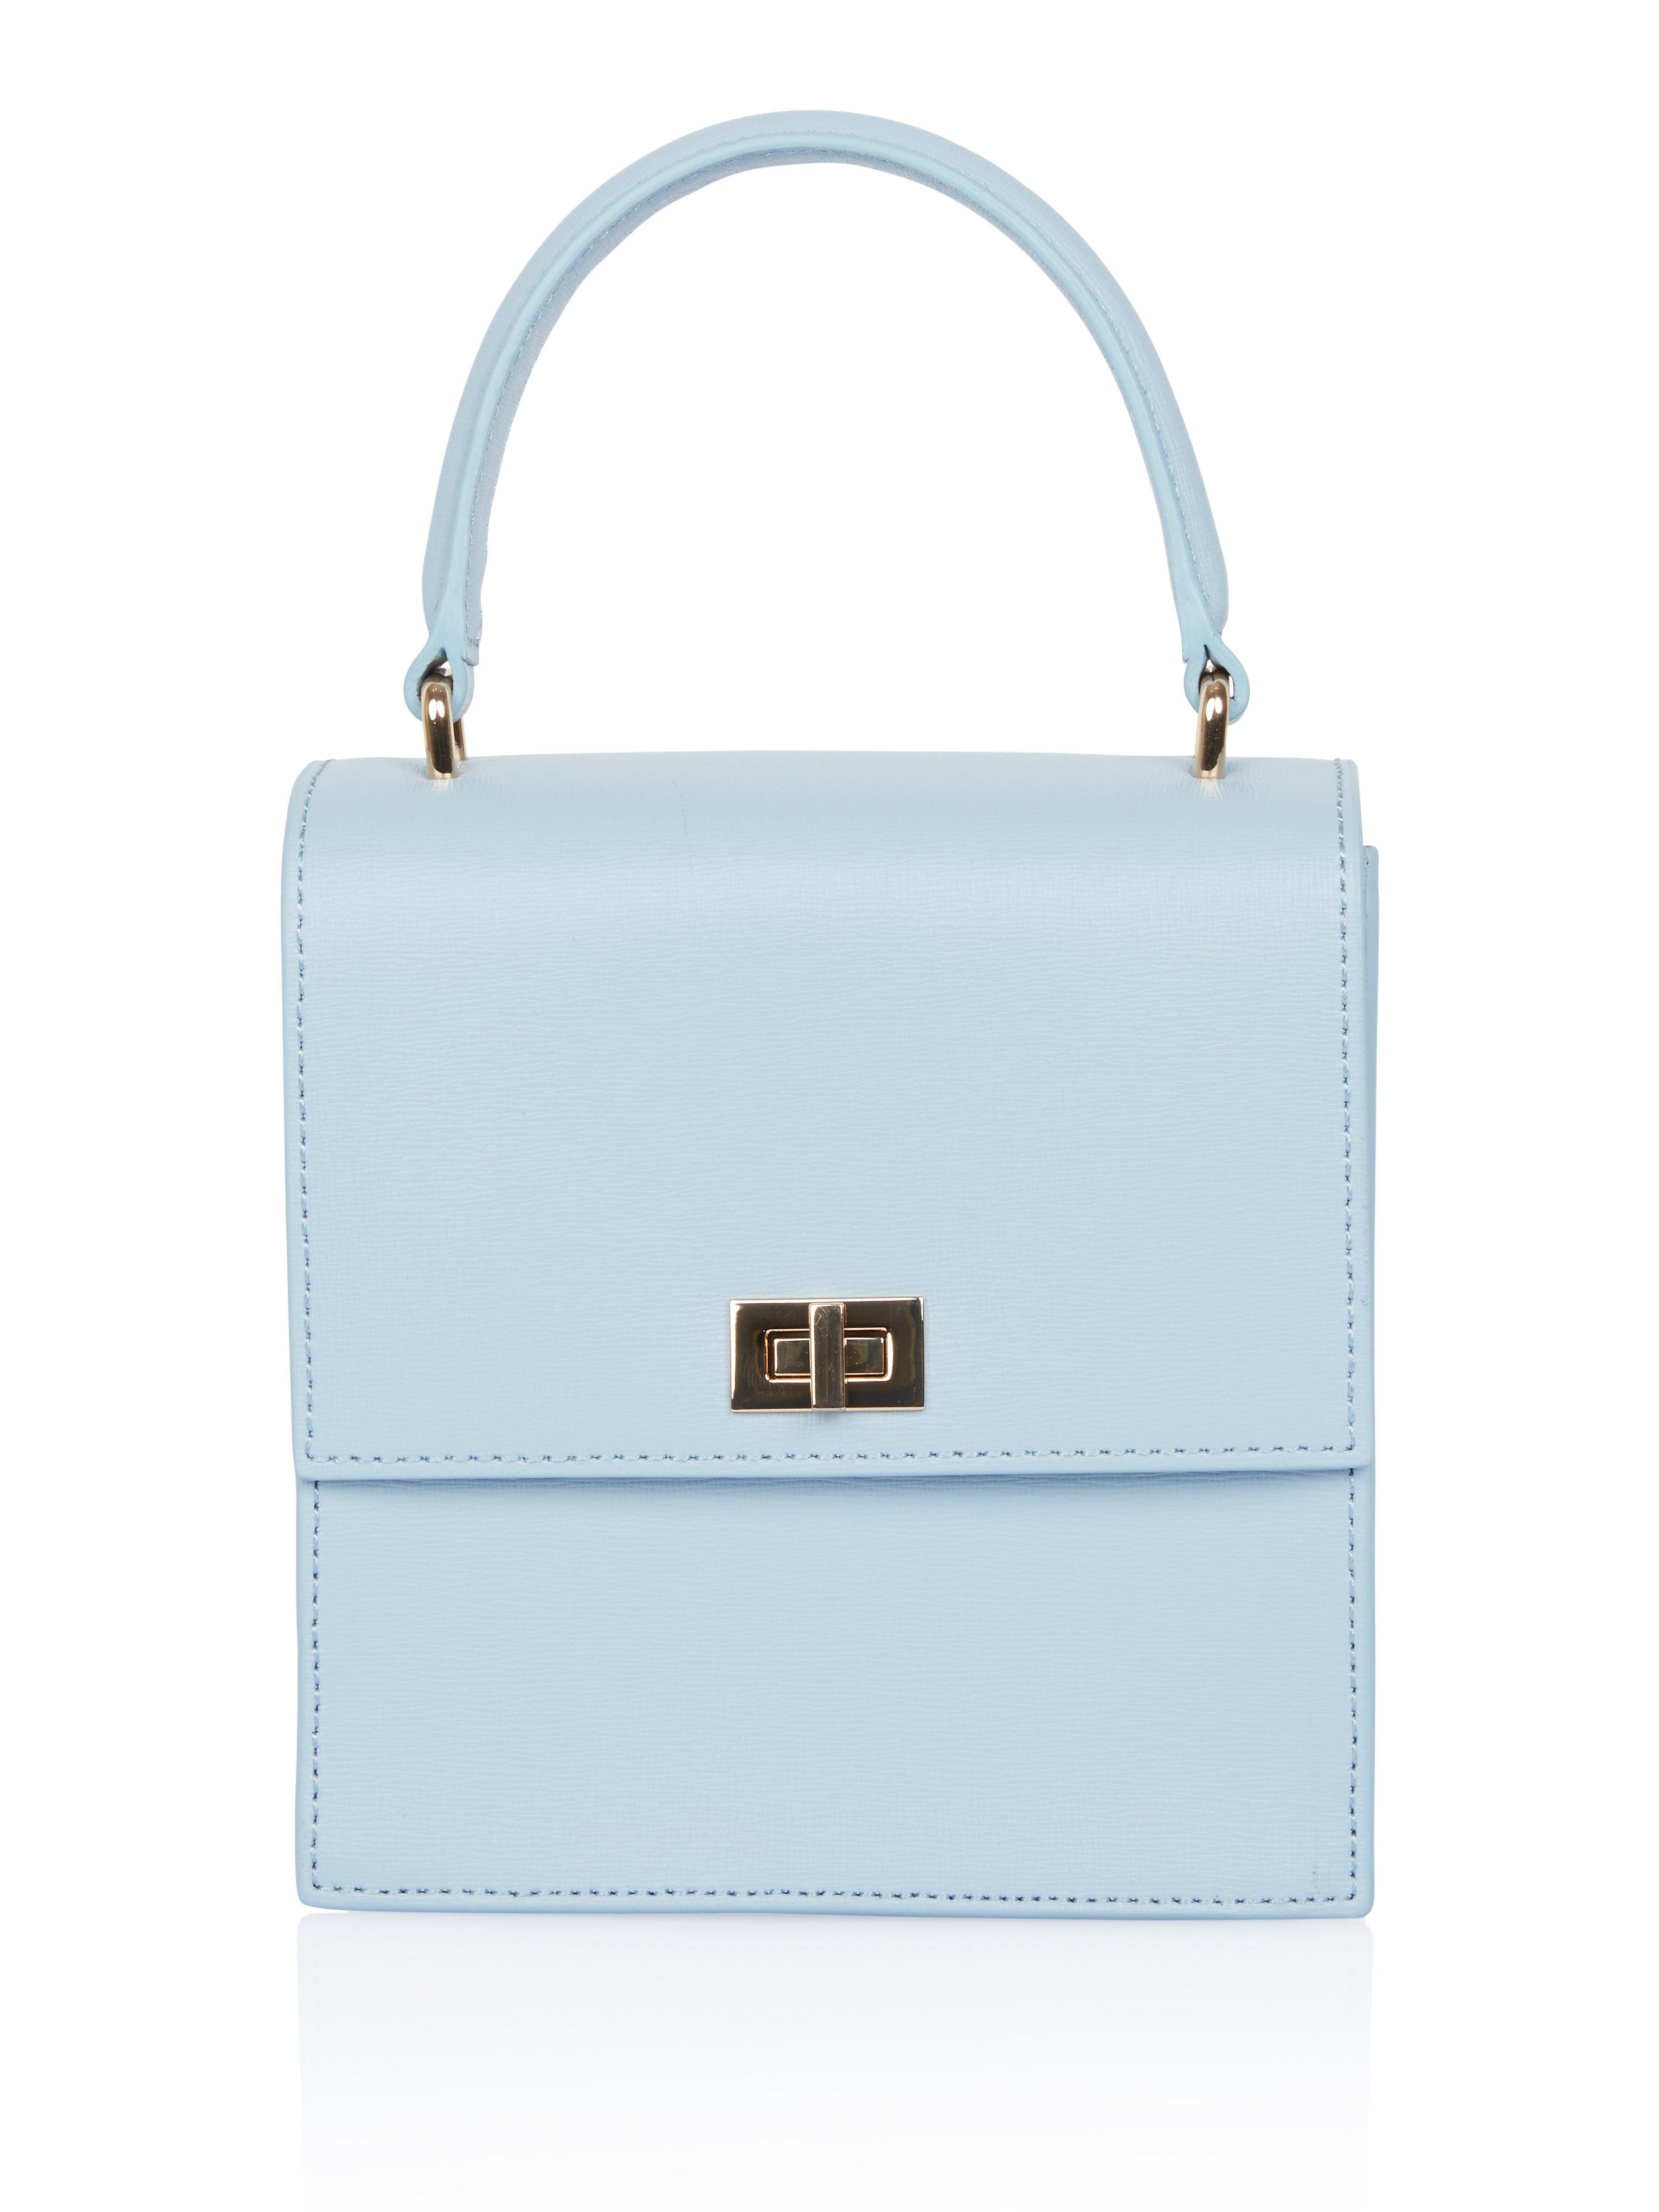 3df849a8b6e1 Lyst - NEELY   CHLOE Mini Lady Bag in Blue